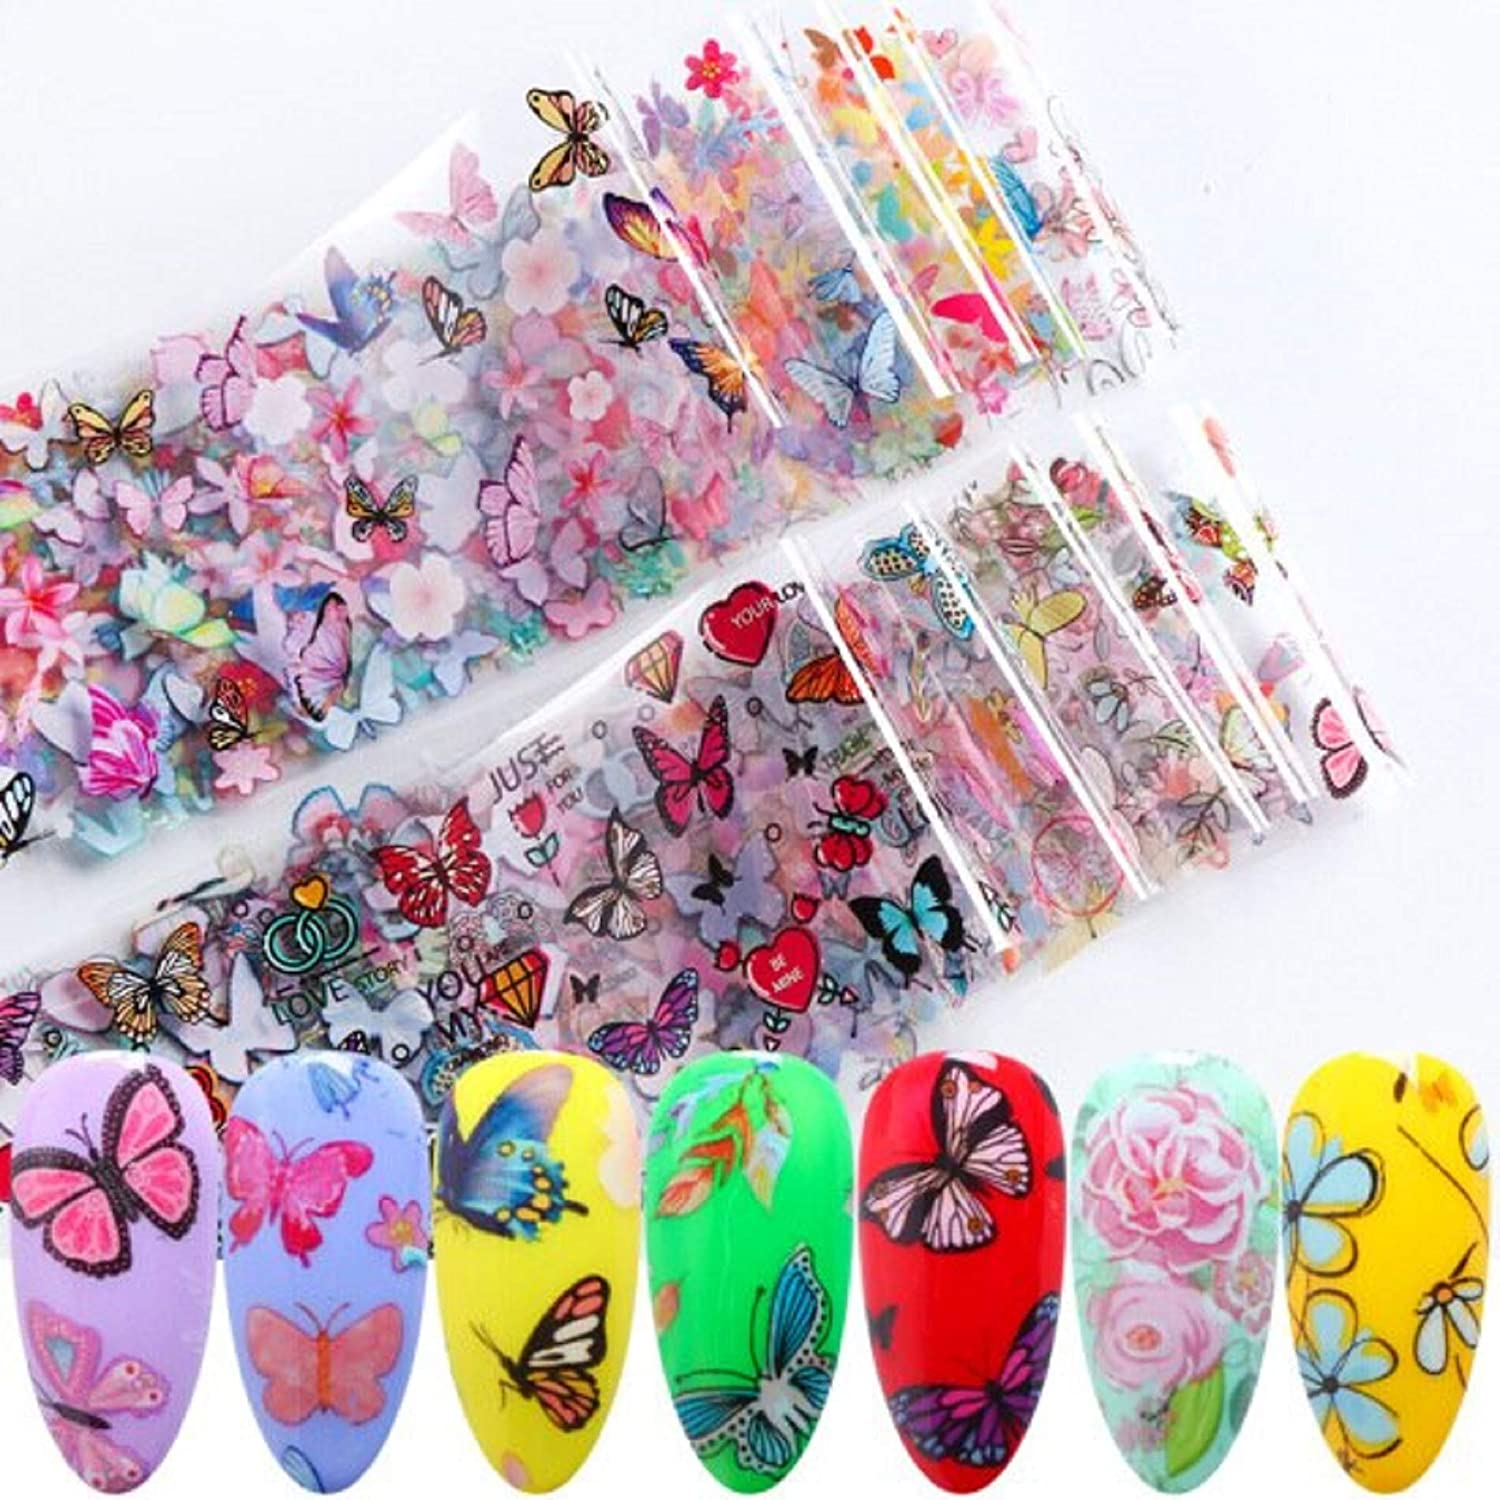 10 New Butterfly Black Leaf Nails Purple Flower Nail Art Stickers Sticky Nail Decoration Decals (XK102)